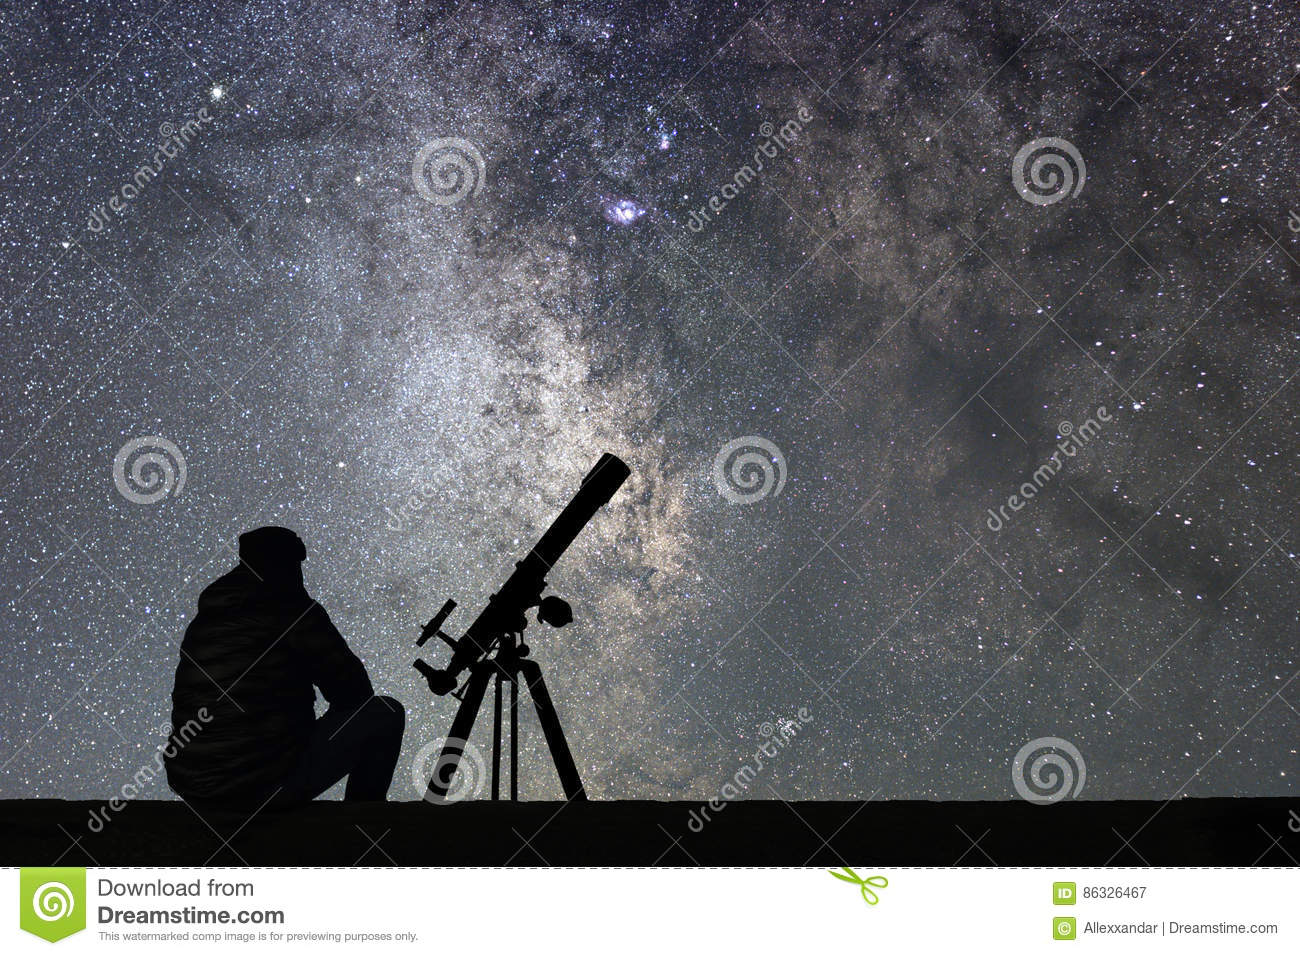 Take photos through telescope Orion Telescopes & Binoculars: Official Site - m